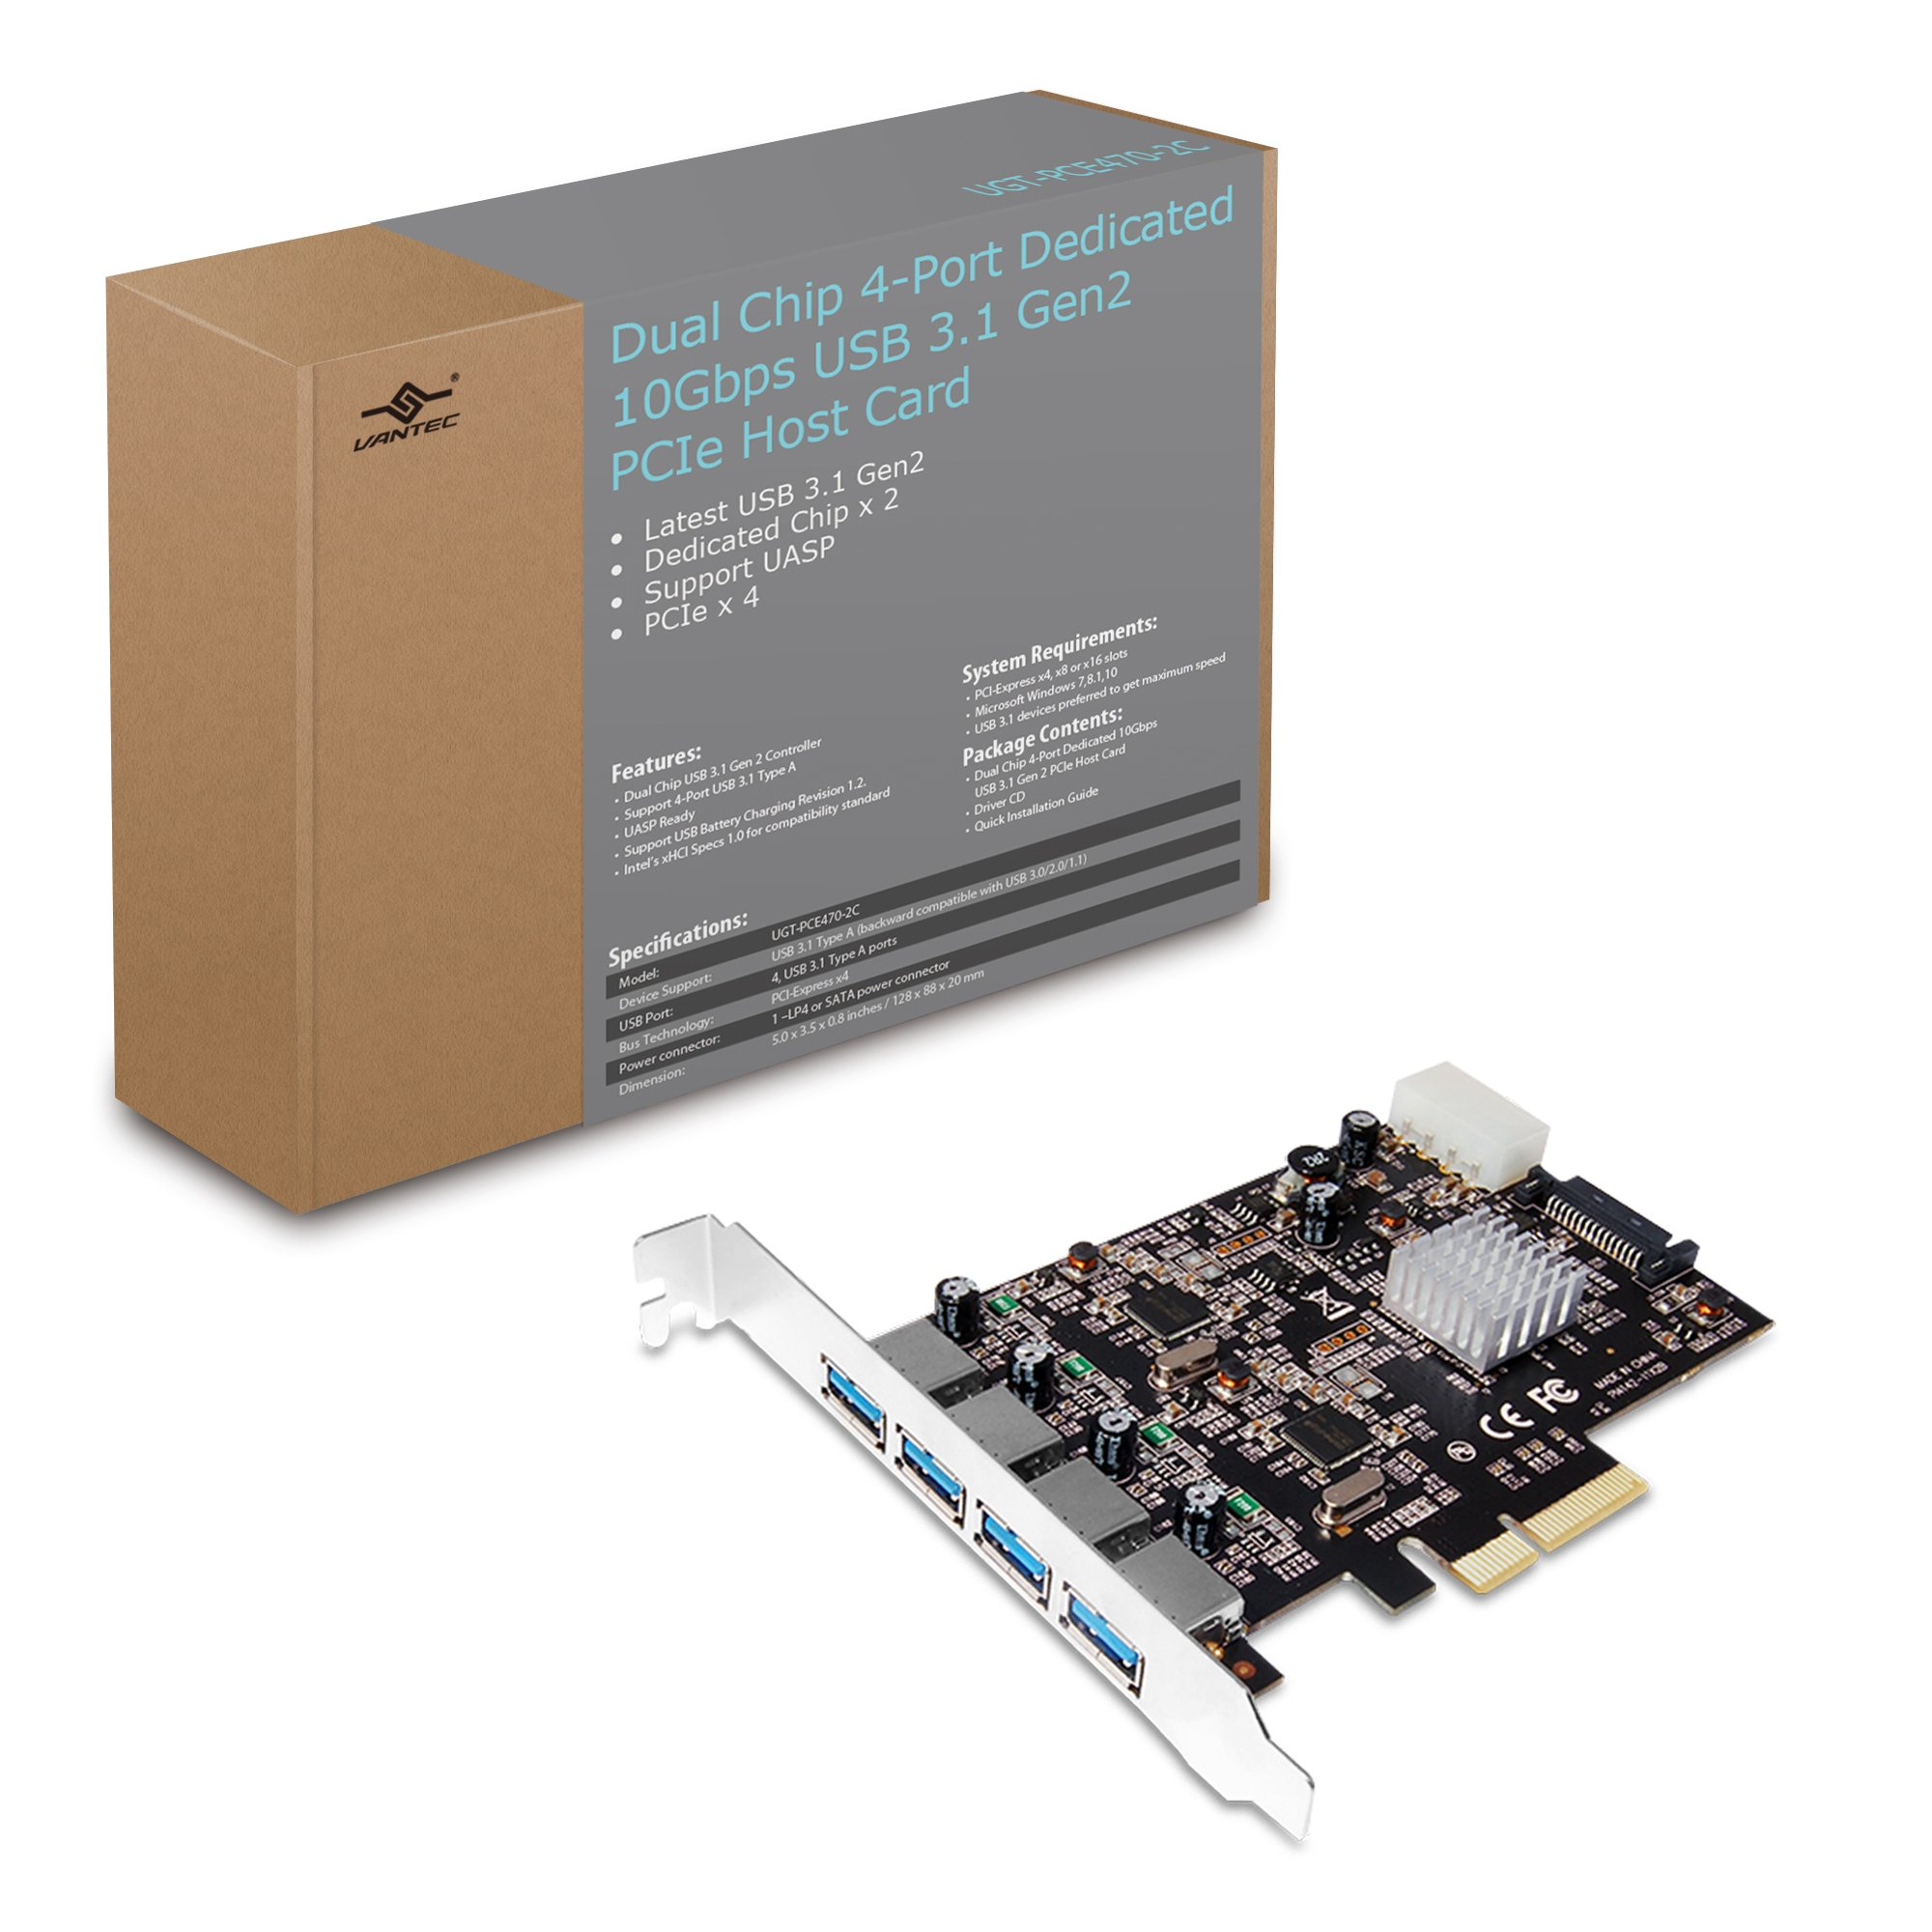 Vantec 4-port Dedicated 10gbps Usb 3.1 Gen 2 Pcie Host Card